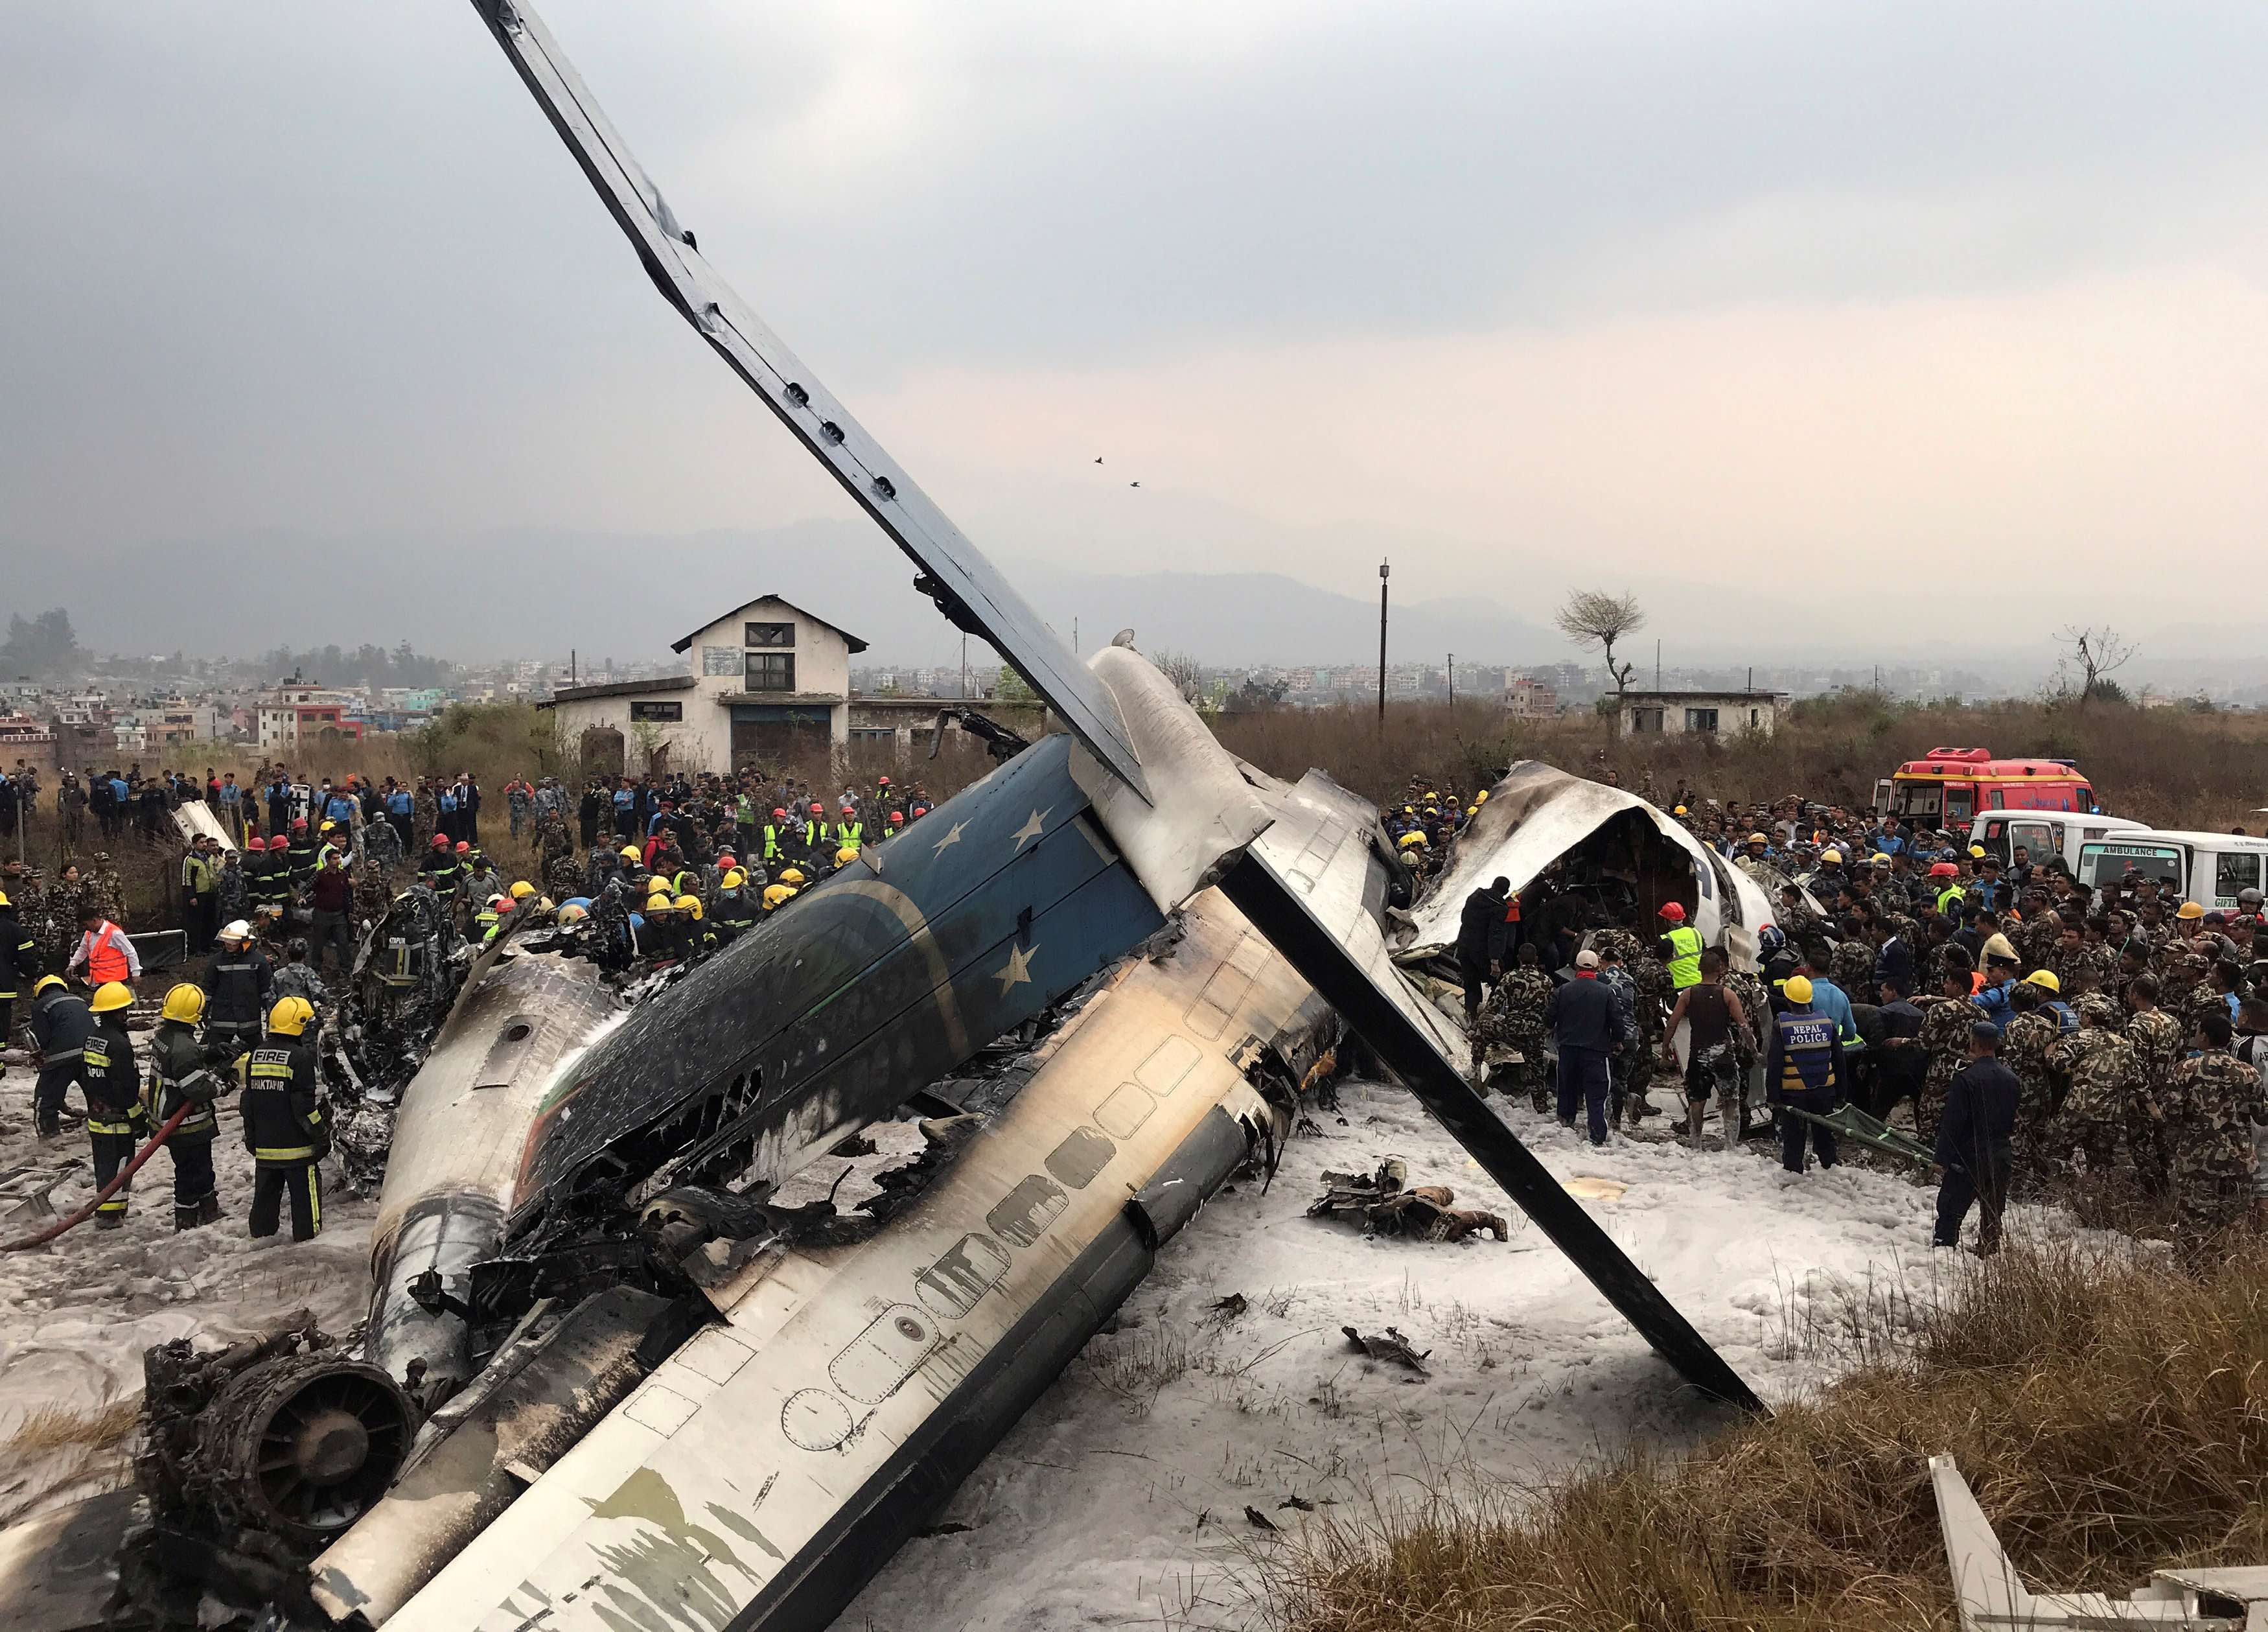 Bangladesh Plane Carrying 71 People Crashes in Nepal; At Least 50 Dead